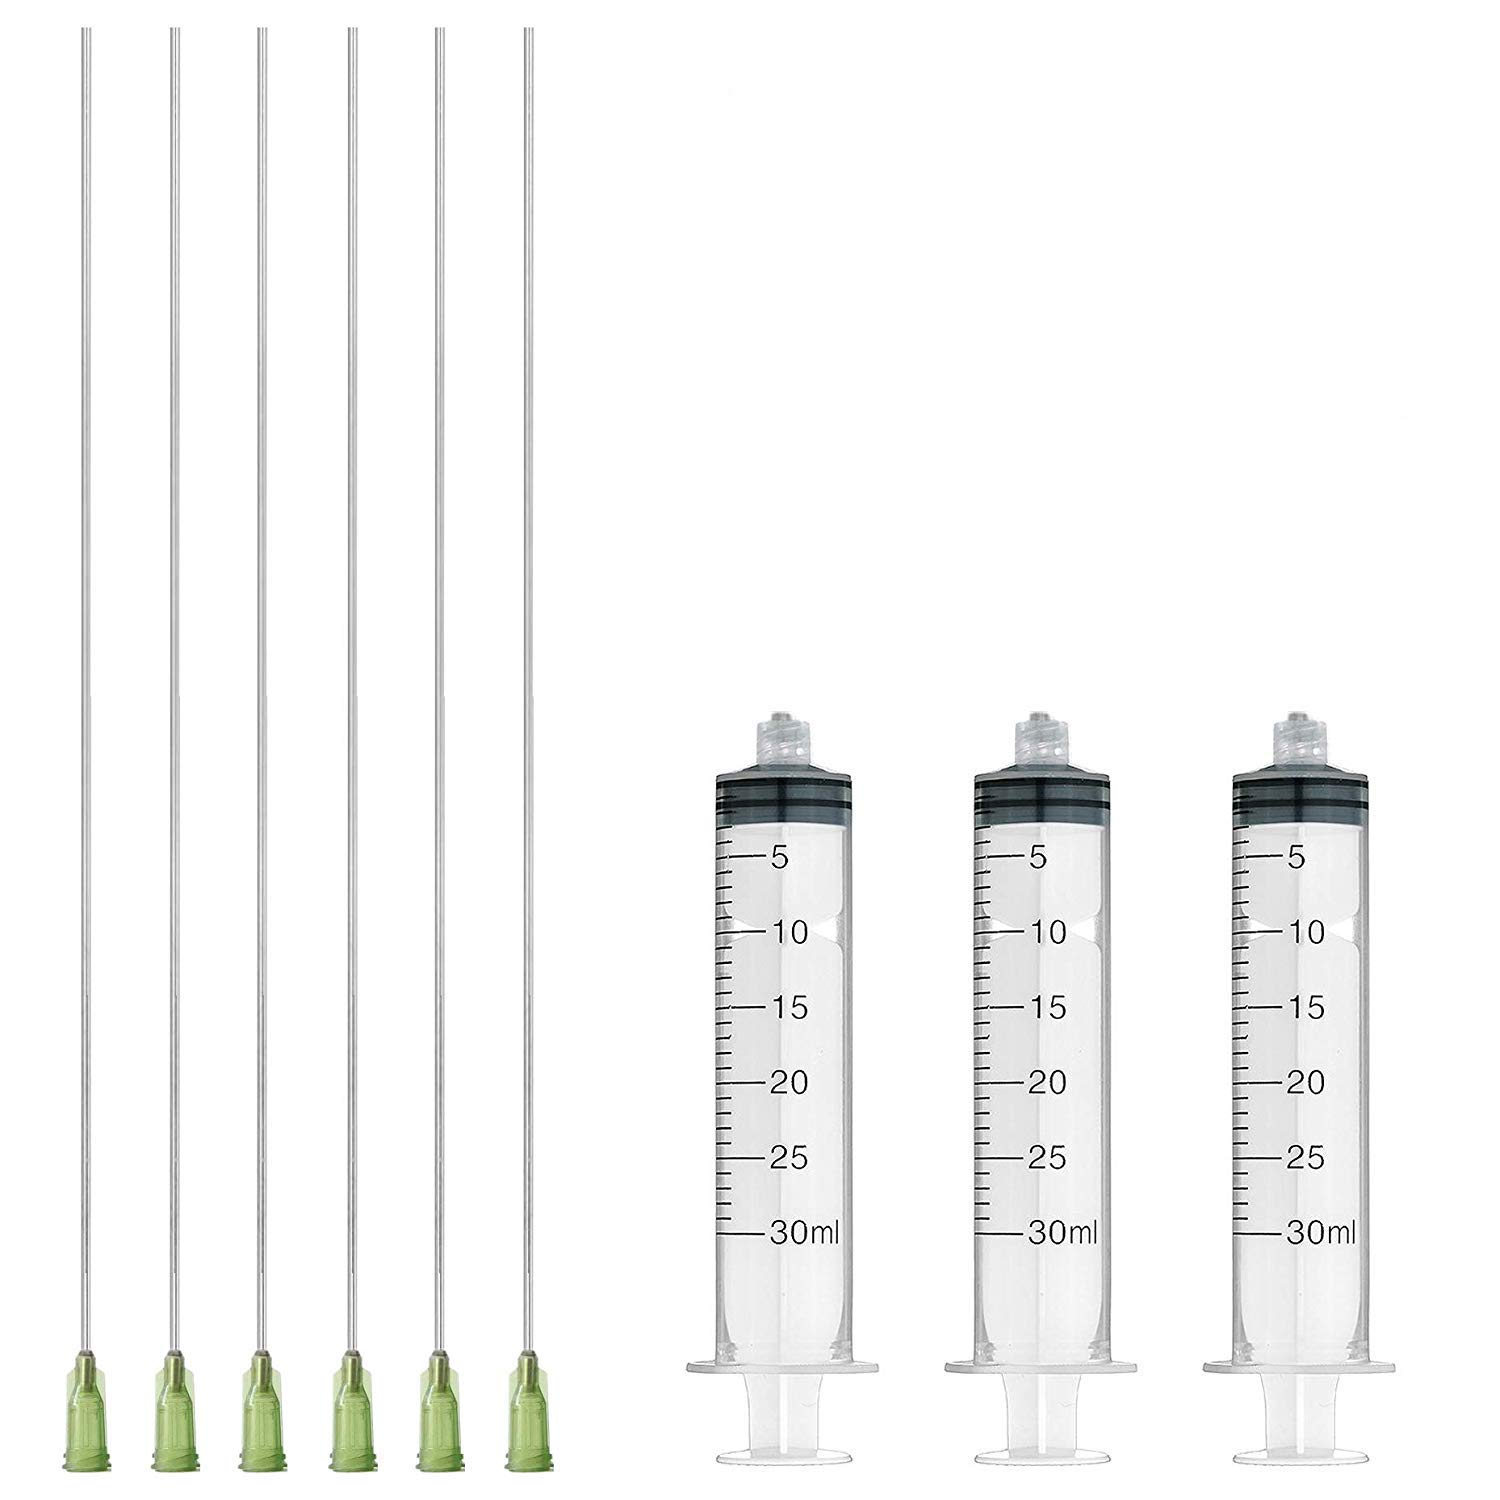 "Rachel's Closeouts 6 Pcs Dispensing Needle 14G x 10"" with 3 Pcs 30ml Syringe - Blunt Tip Luer Lock 10-inches Super Long Needles"